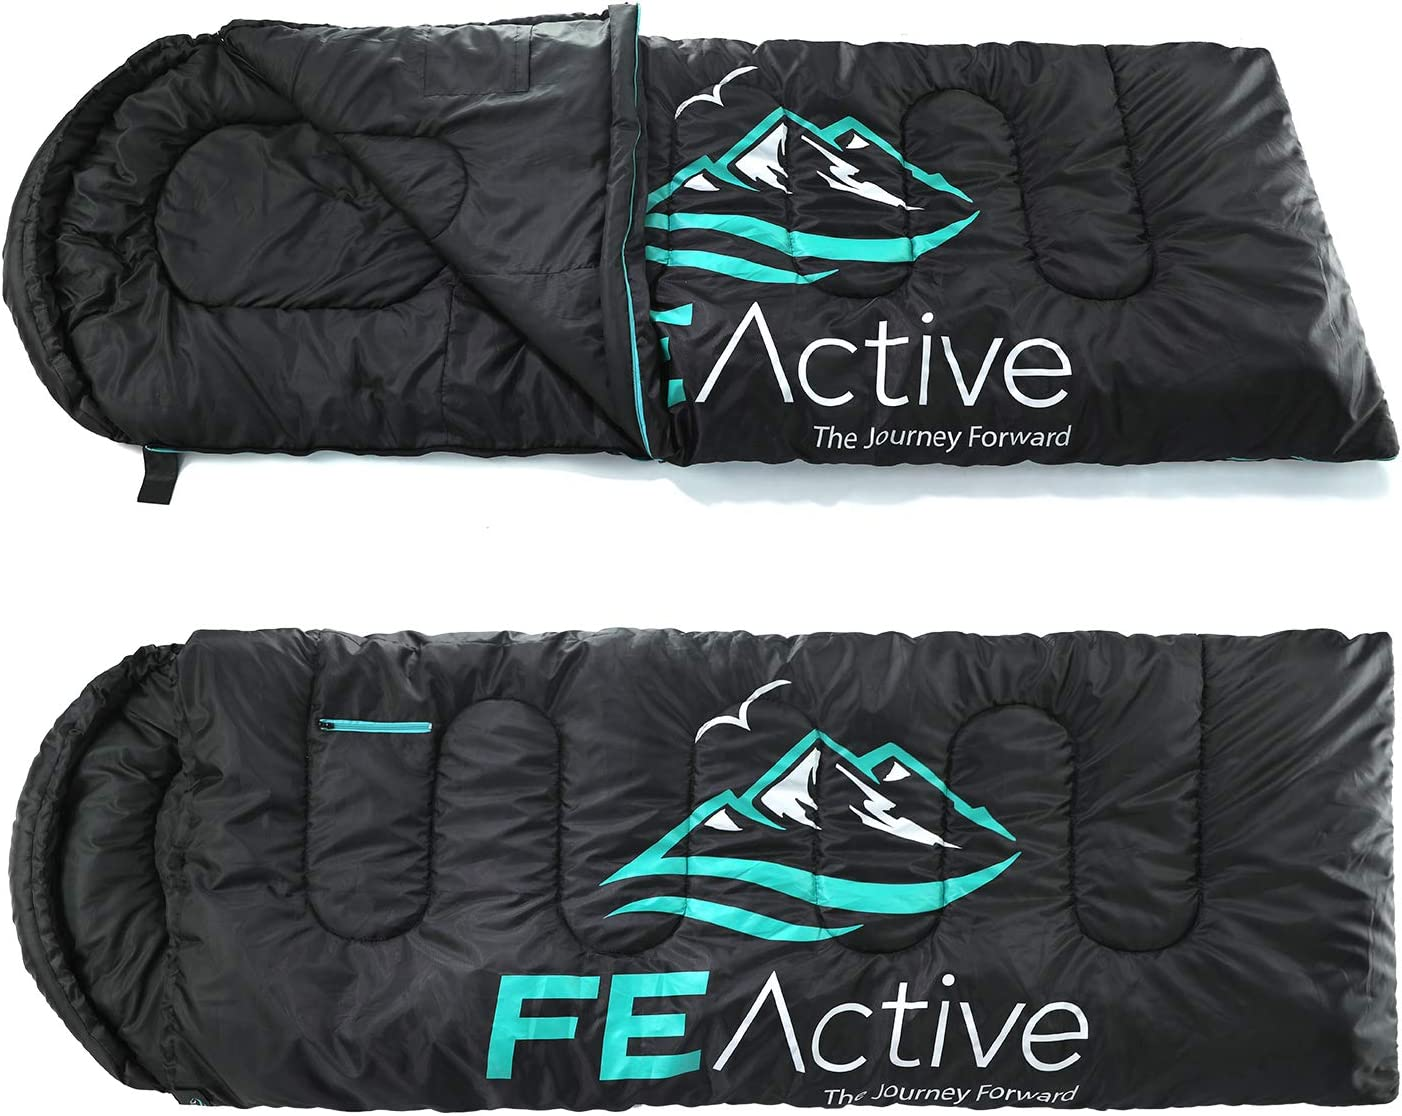 FE Active – Sleeping Bag 3-4 Seasons with Hood, Extra Long 90 x 31 , Water Resistant Sleeping Bag for Outdoors, Camping, Backpacking, Hiking, Trekking Designed in California, USA